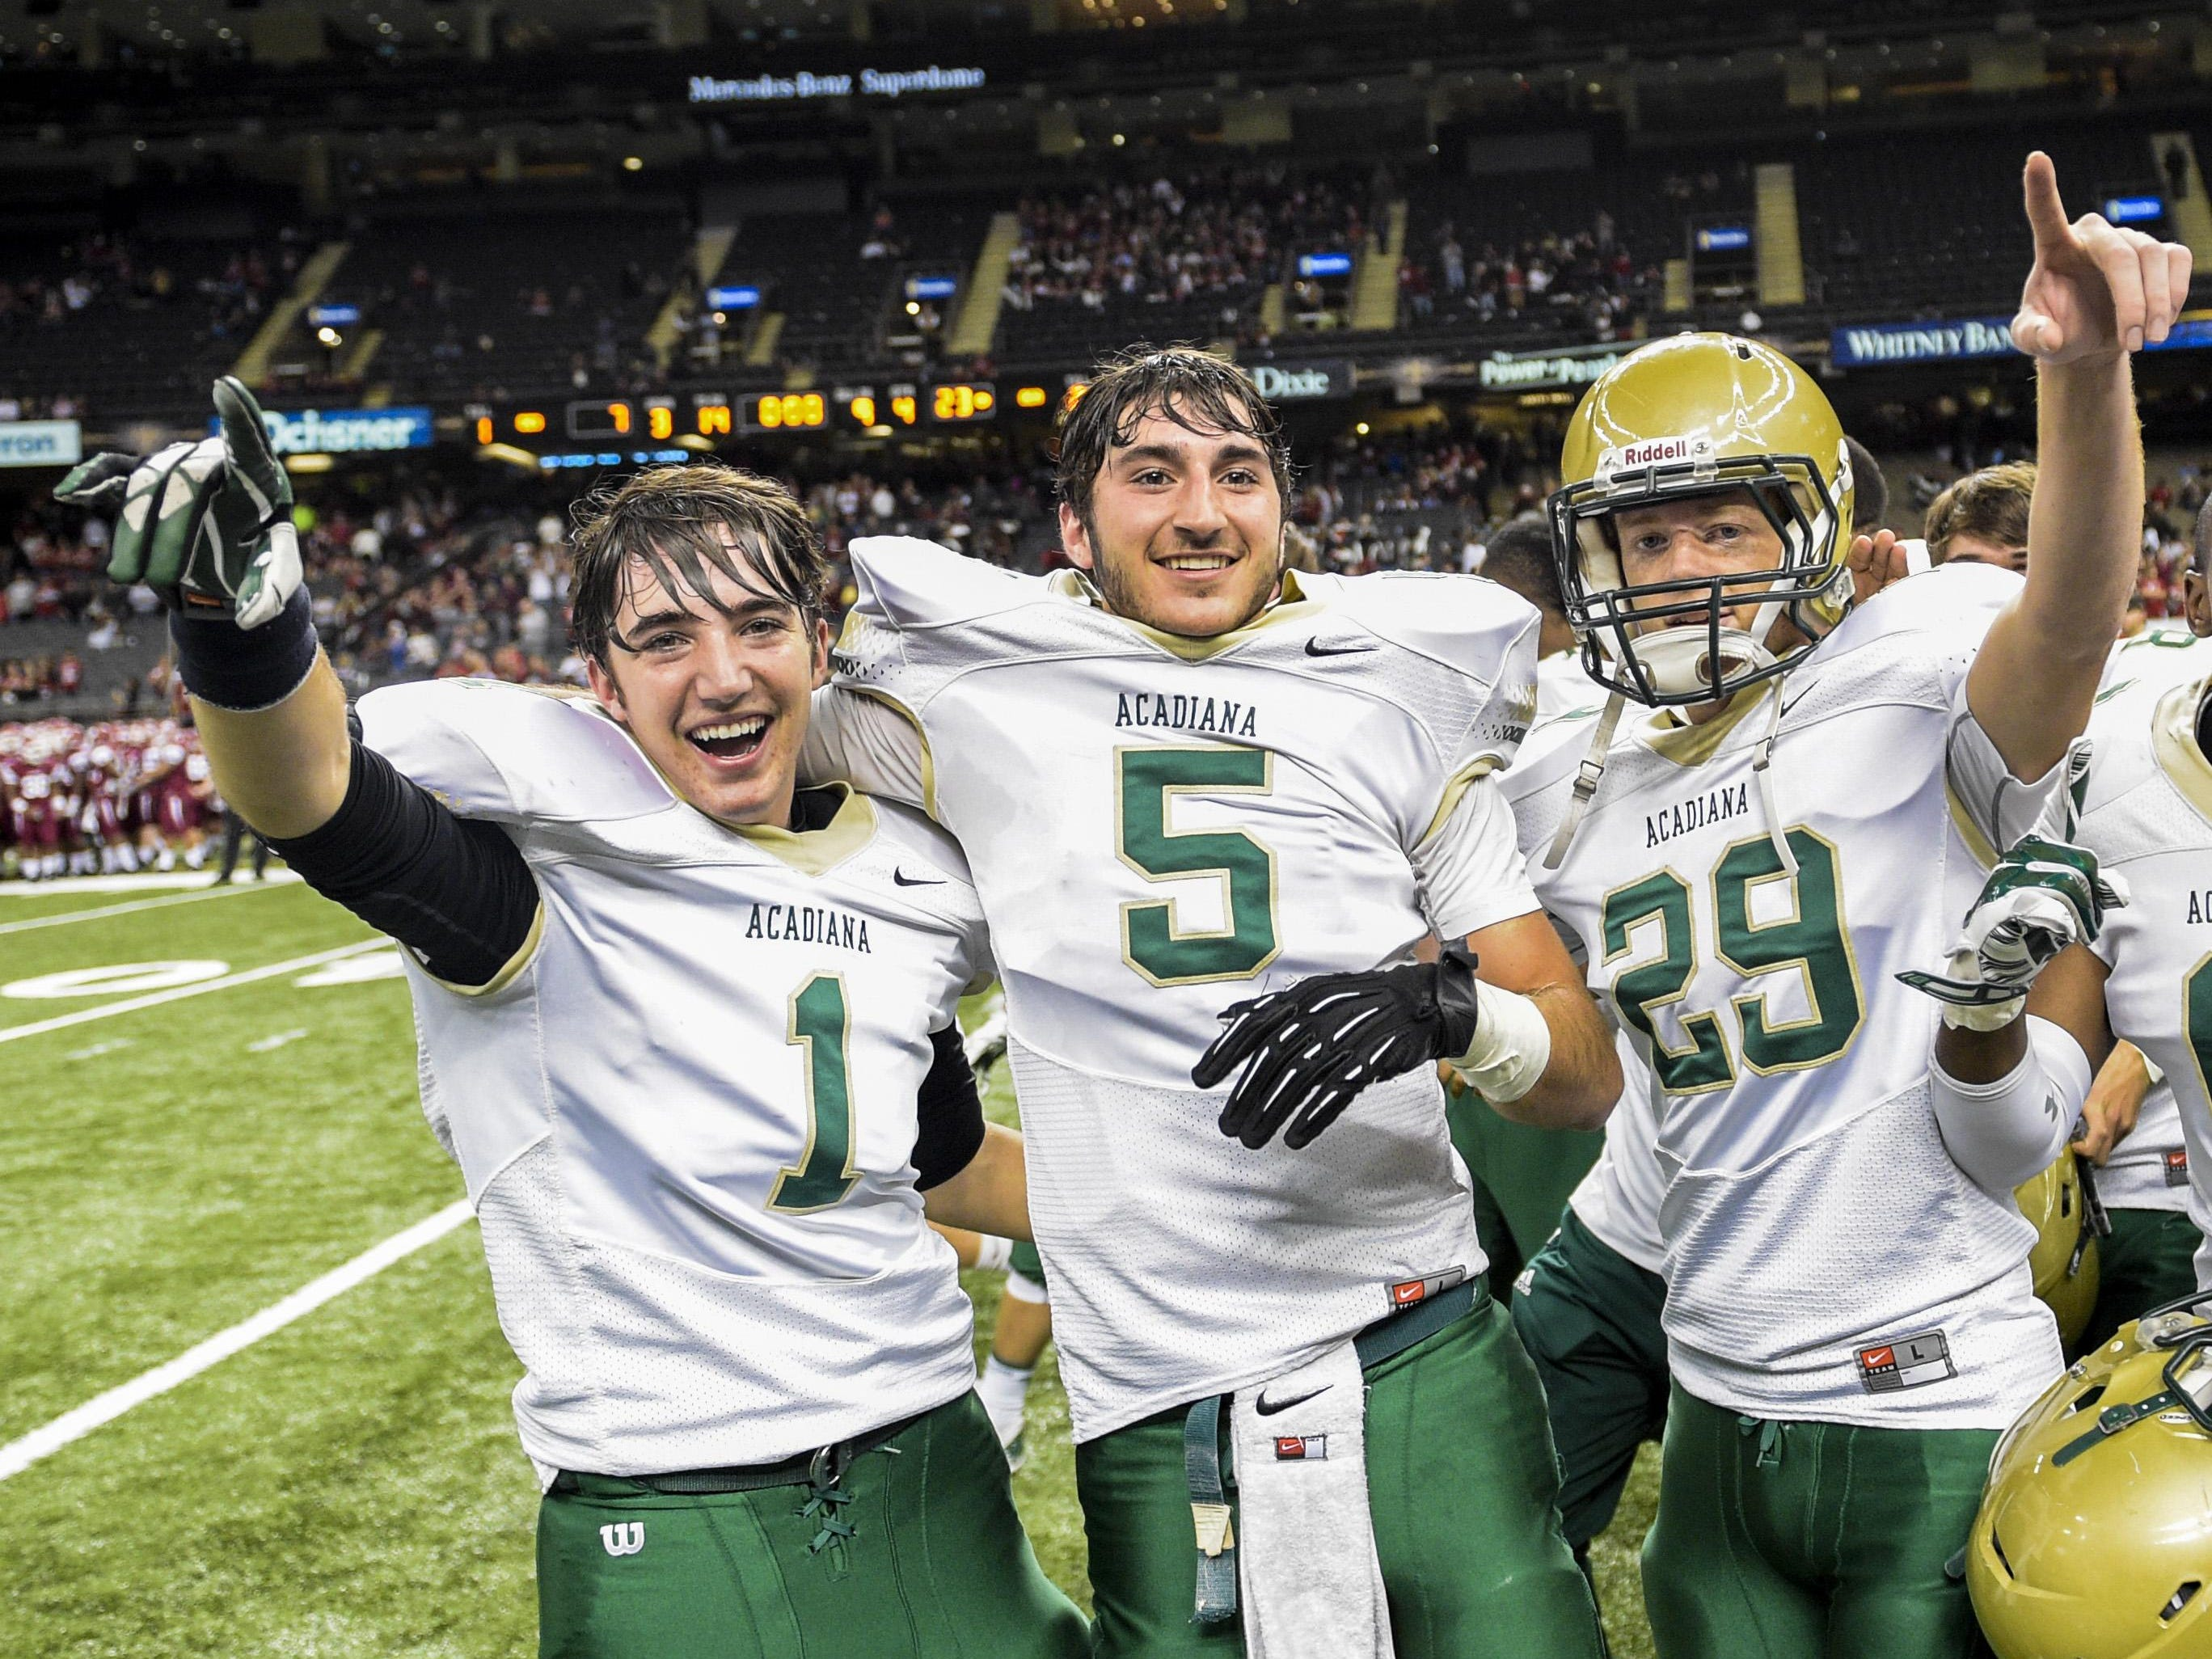 The Acadiana Wreckin' Rams won the program's second straight and fourth overall Class 5A state football championship in 2014. This fall, the Rams will be going for a threepeat.